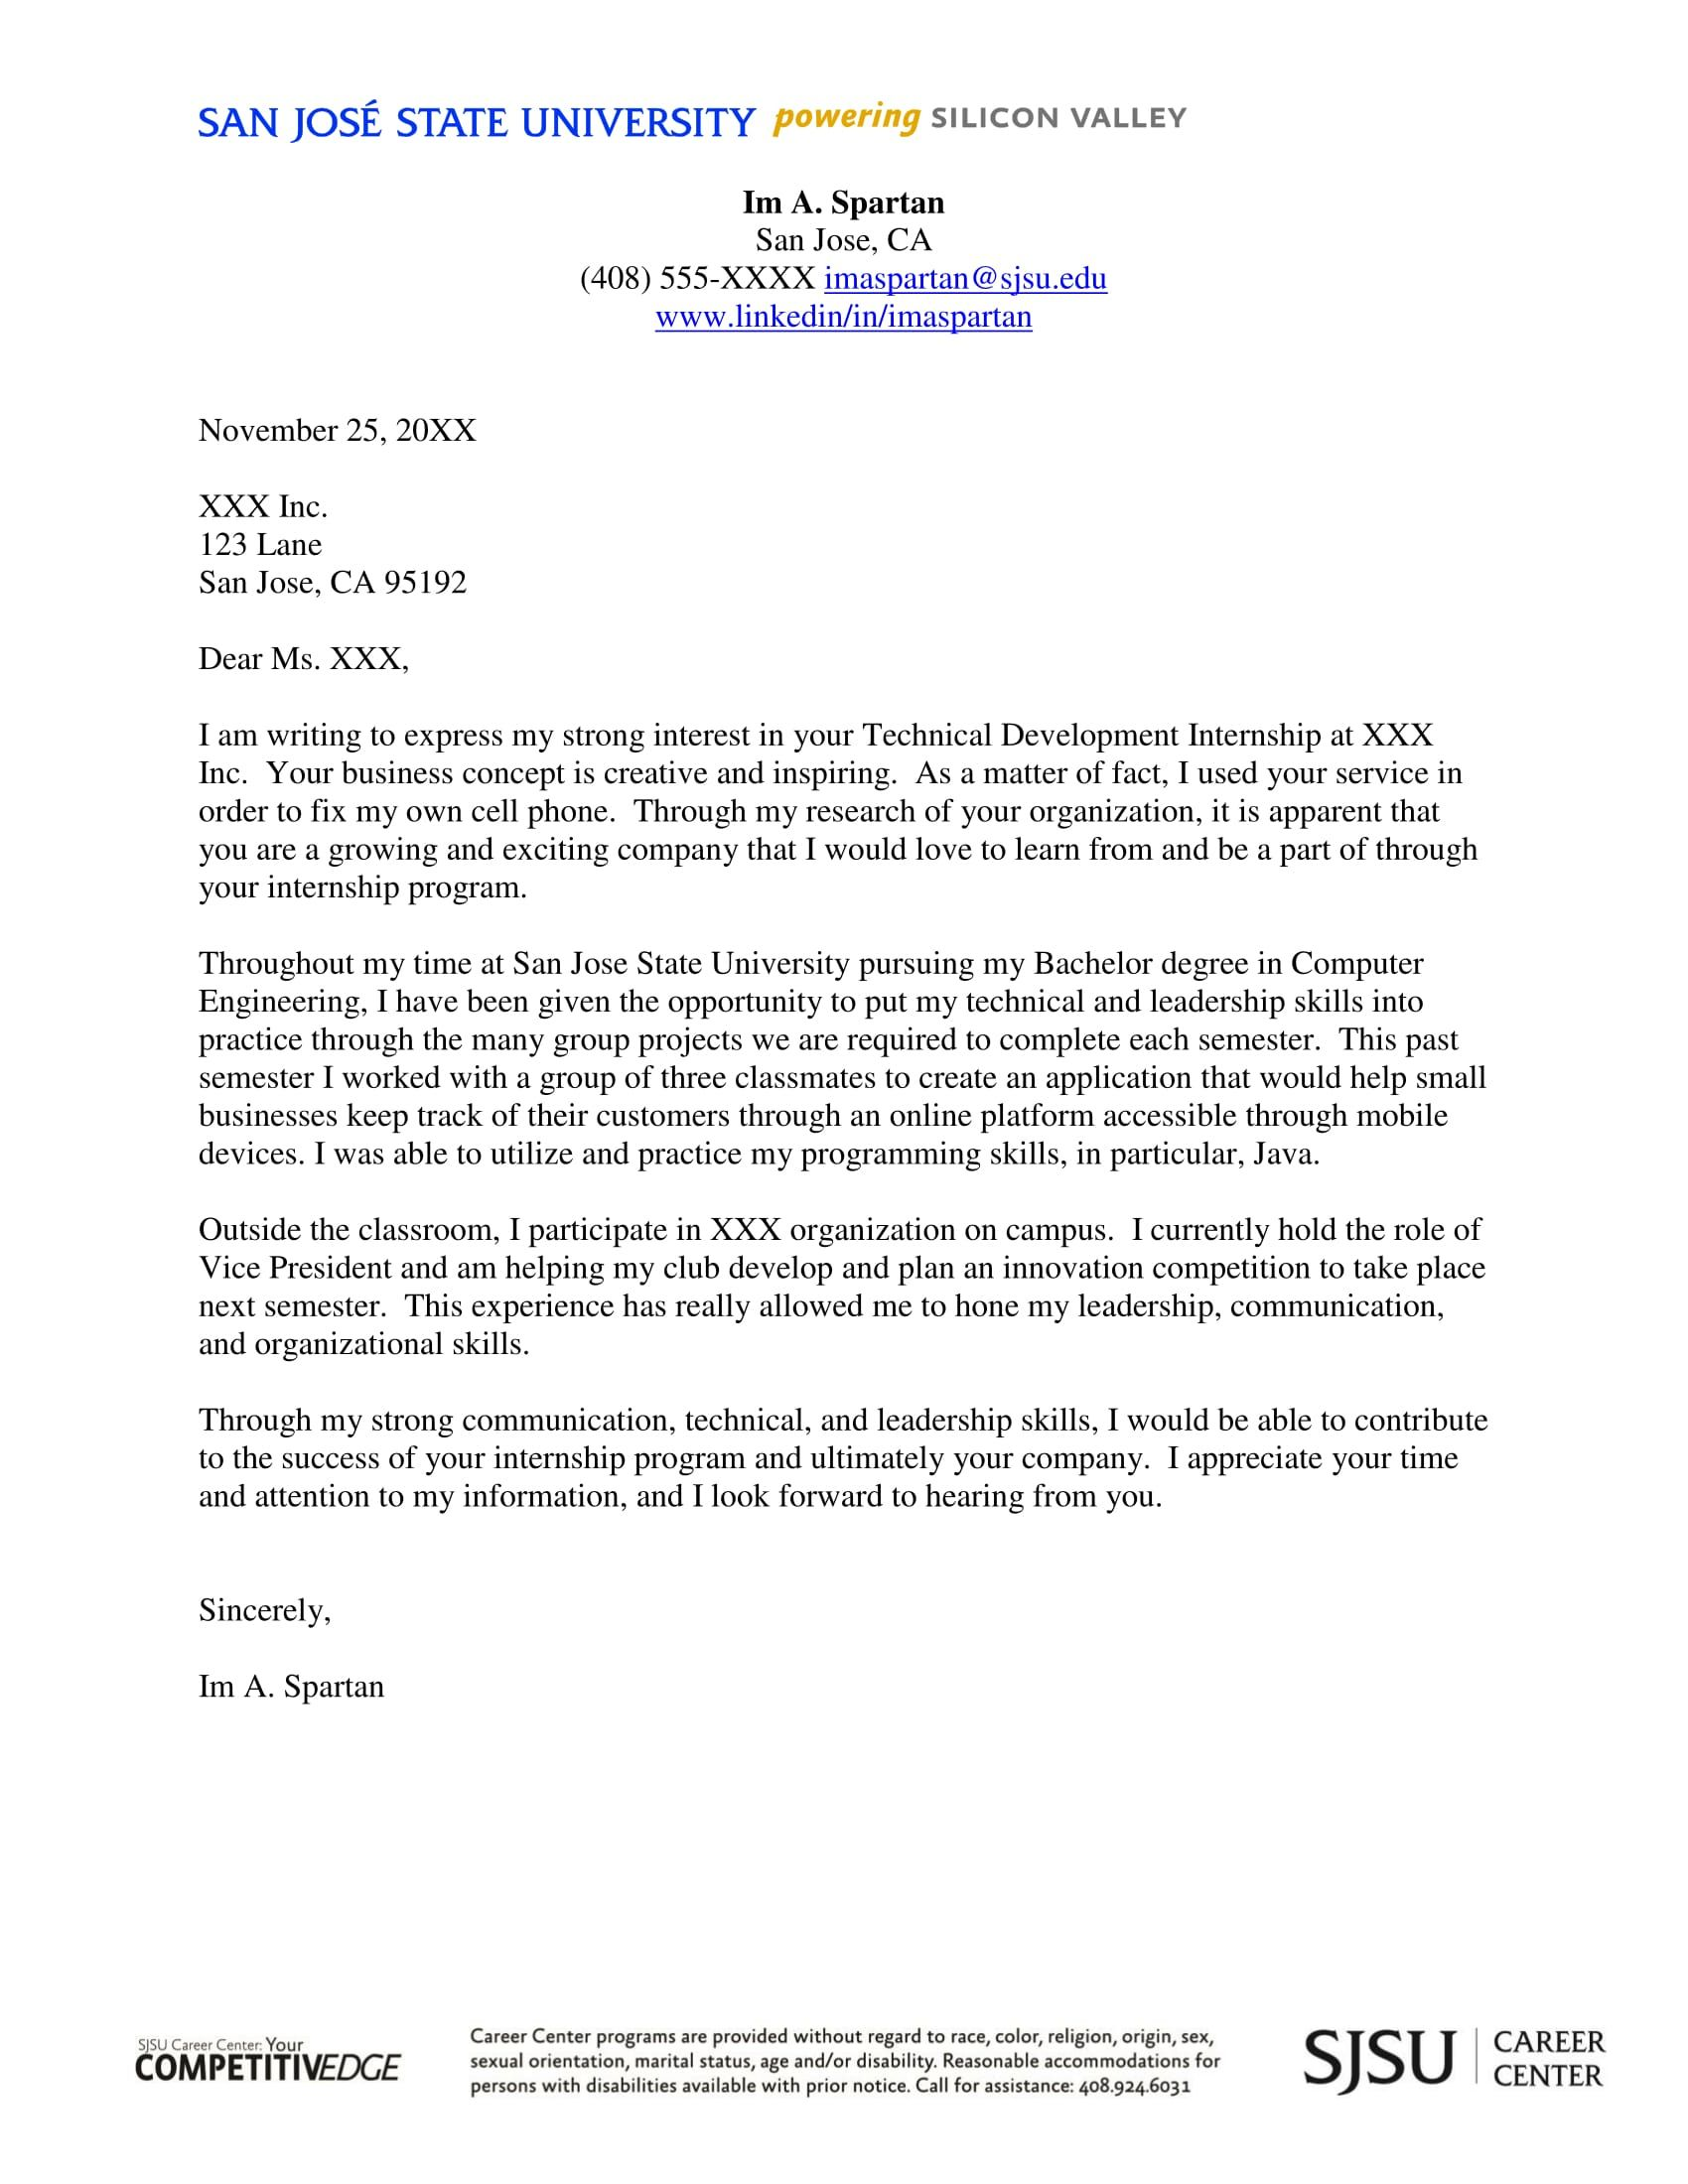 Cover Letters For Internships 30 Cover Letter Examples For Internship Cover Letter Examples